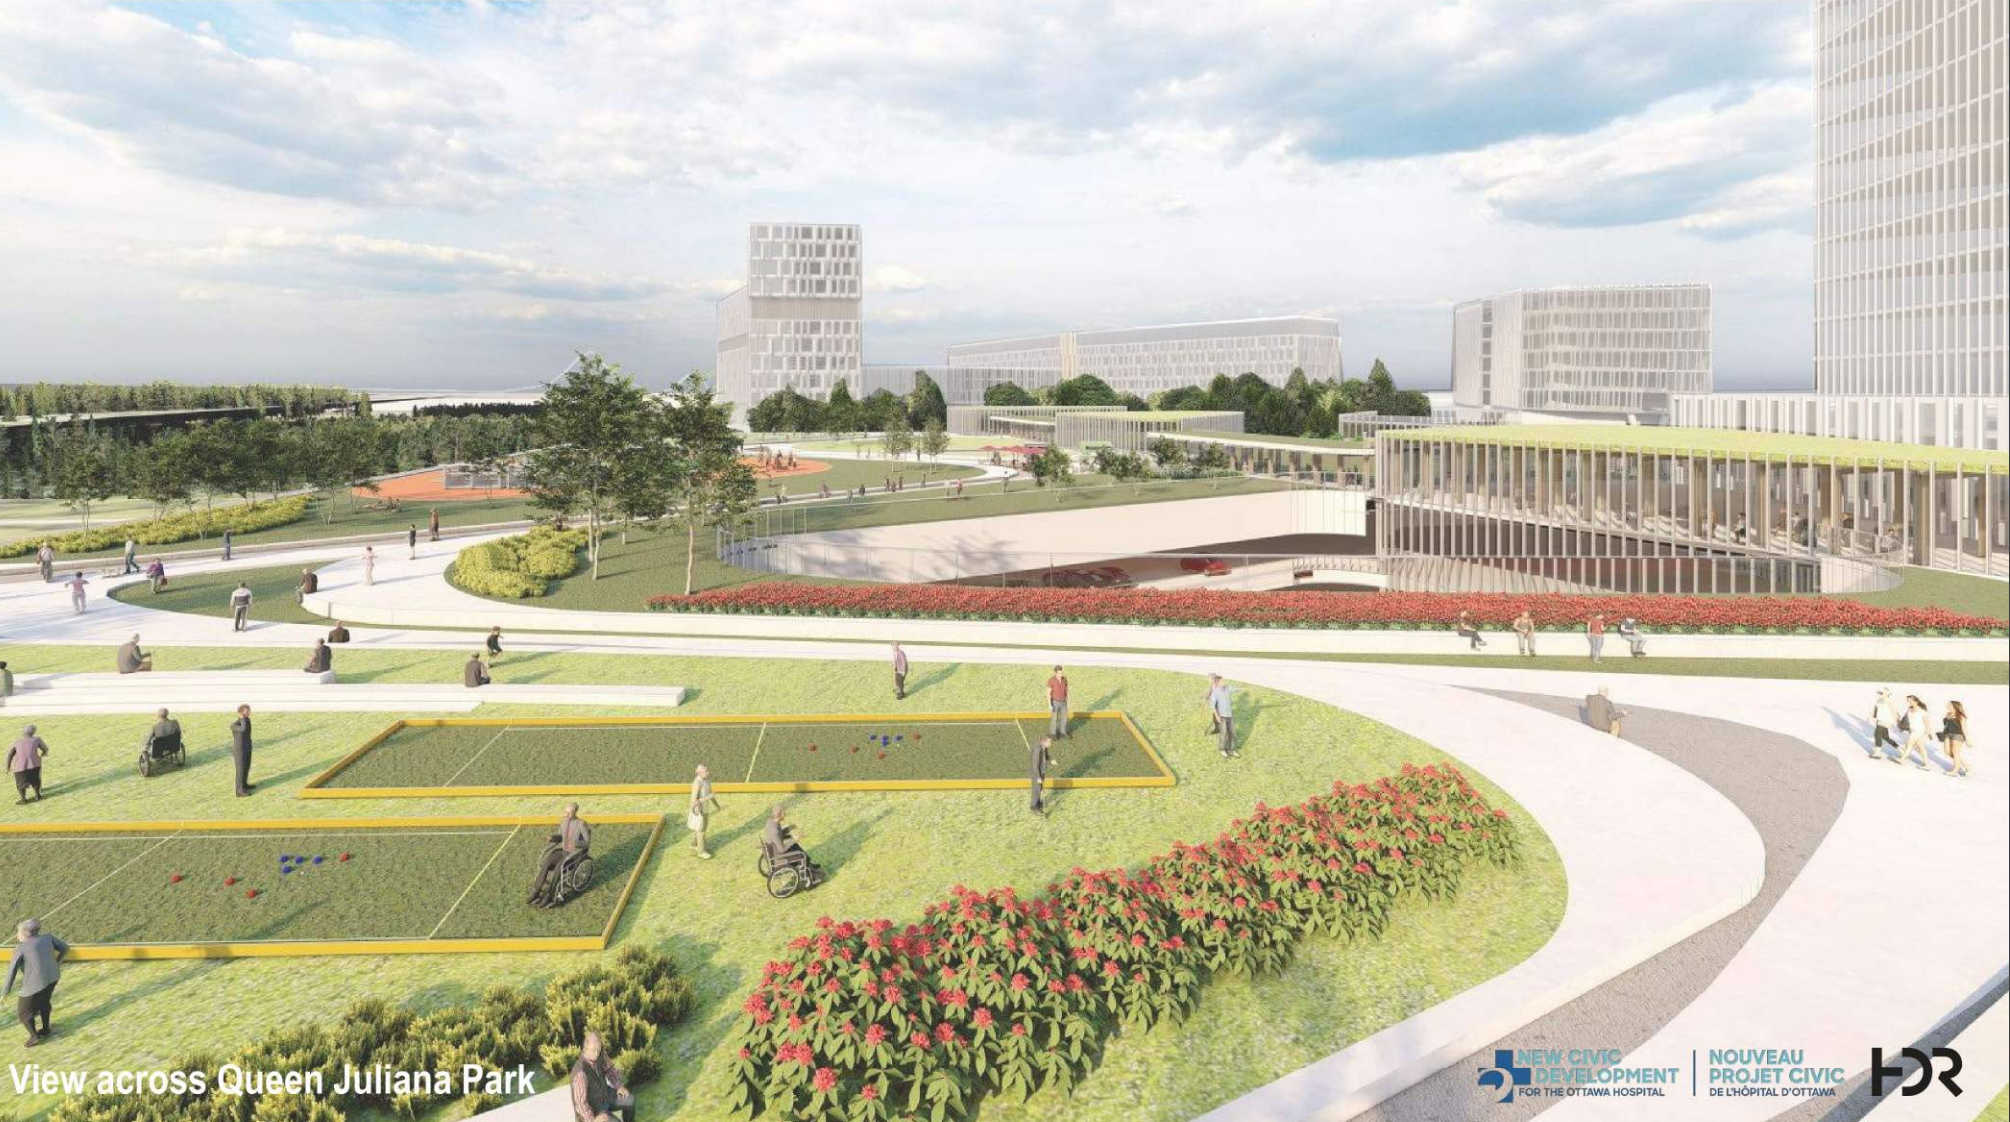 Rendering of the view of the new Civid Hospital Campus